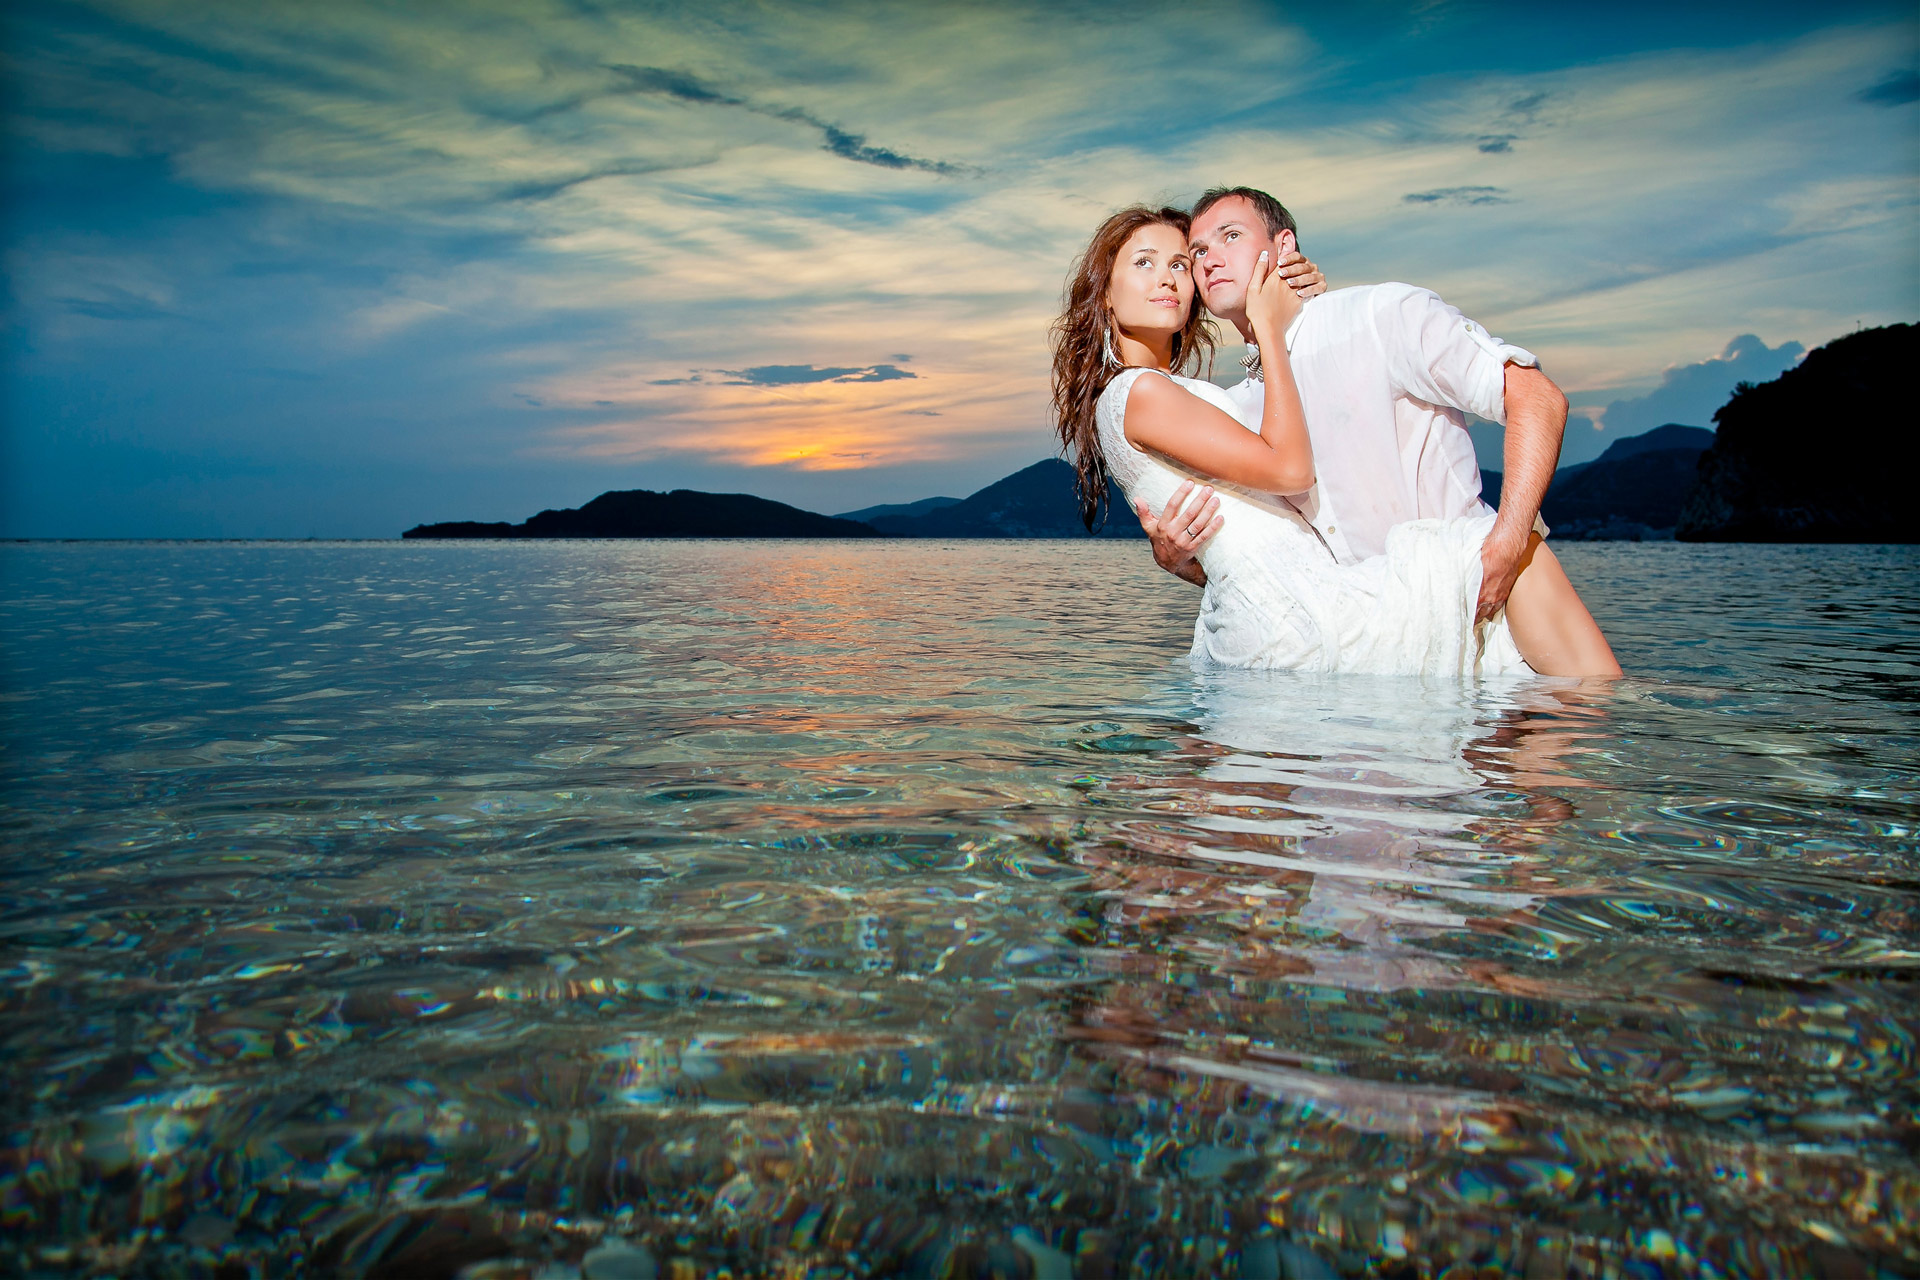 Newlyweds in water, a wedding photo